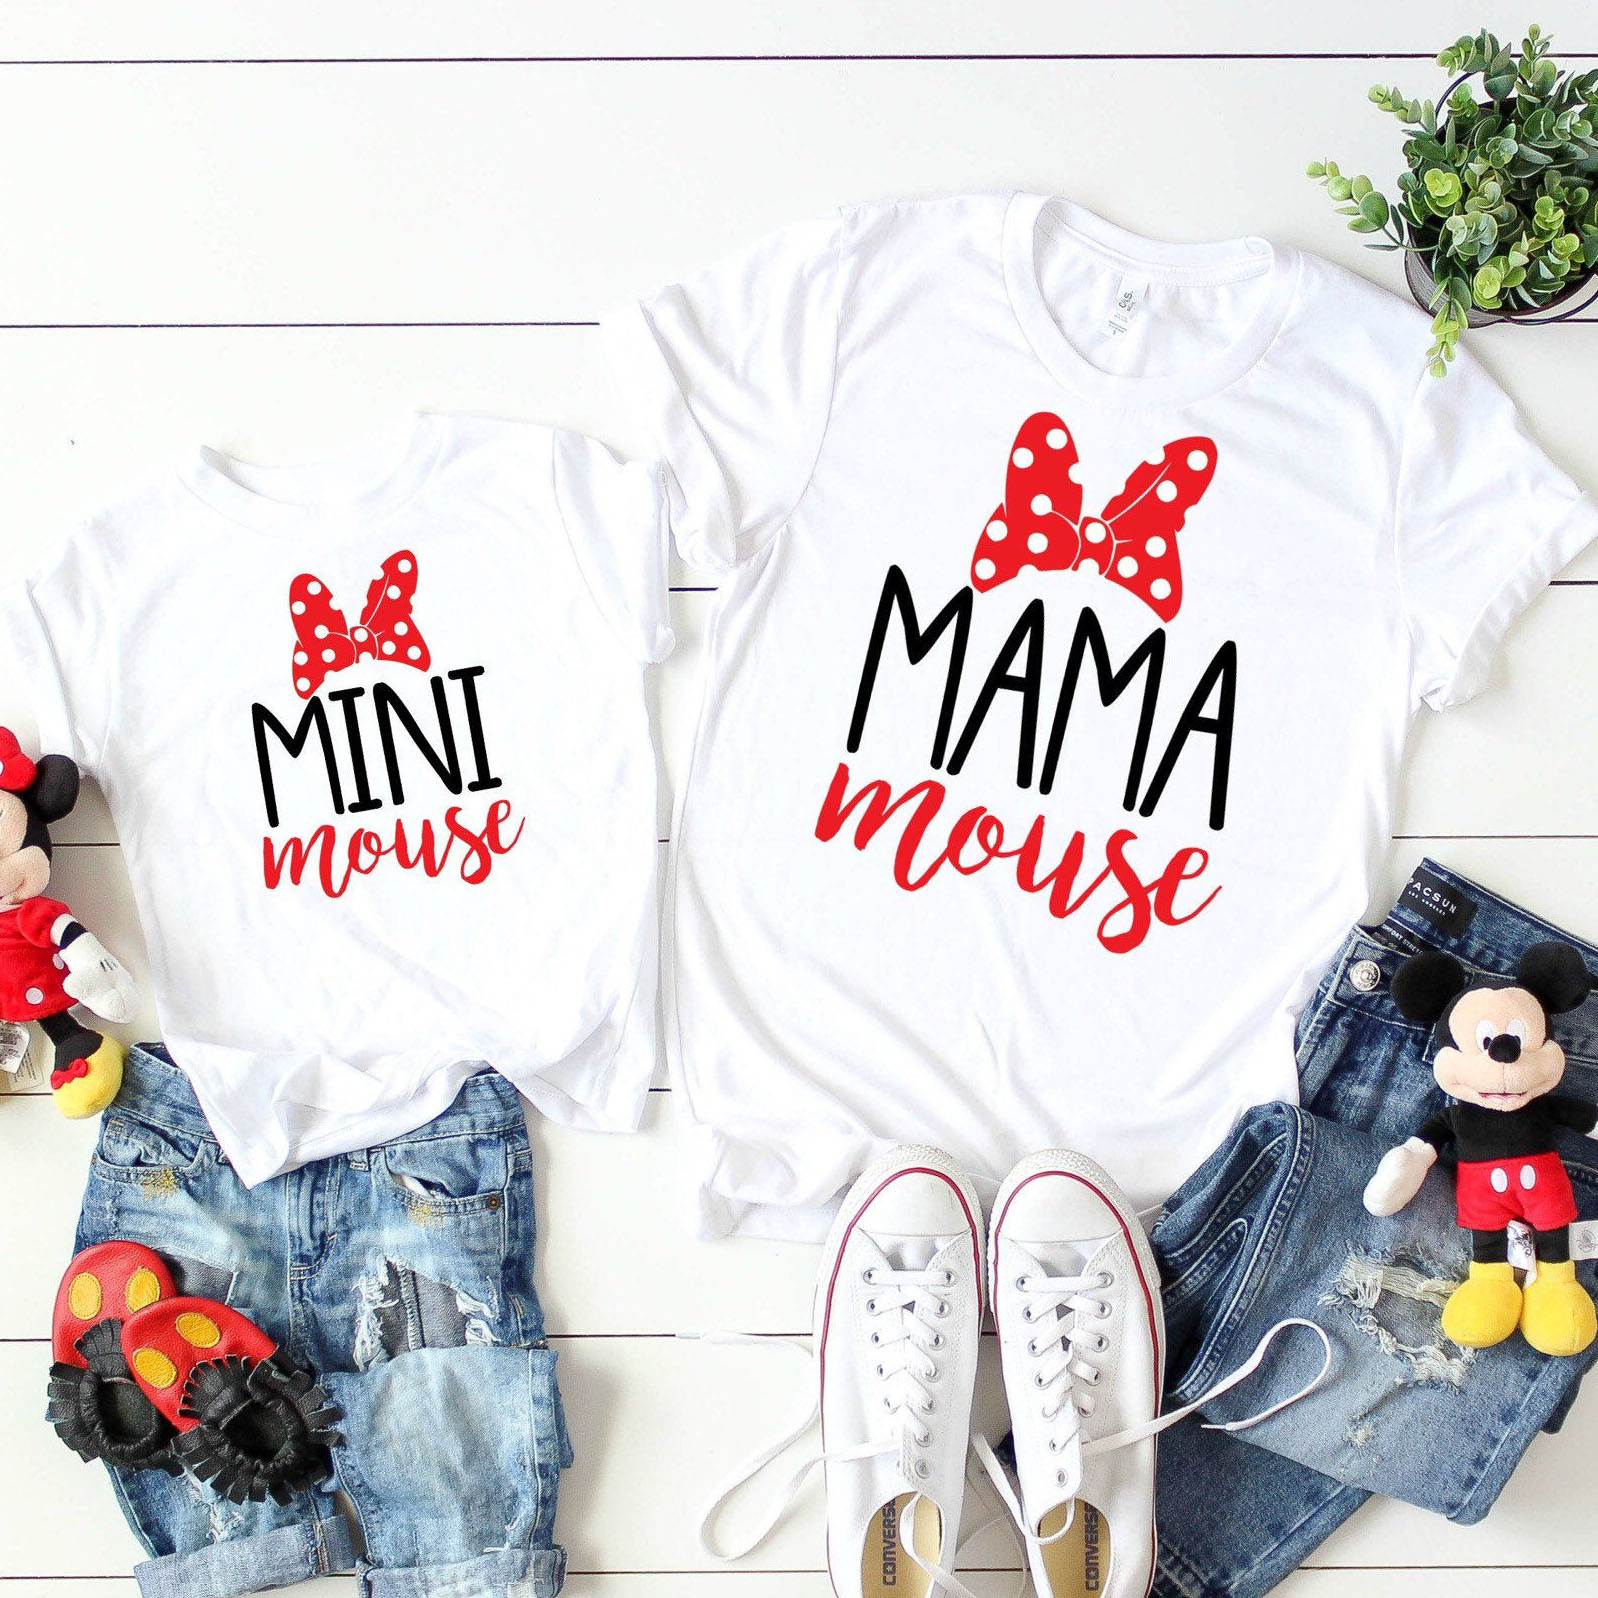 Family Matching Mama Mouse And Mini Mouse T-shirt Mother Daughter Mouse Tshirt Mommy And Me Shirt Set Vacation Shirt Set